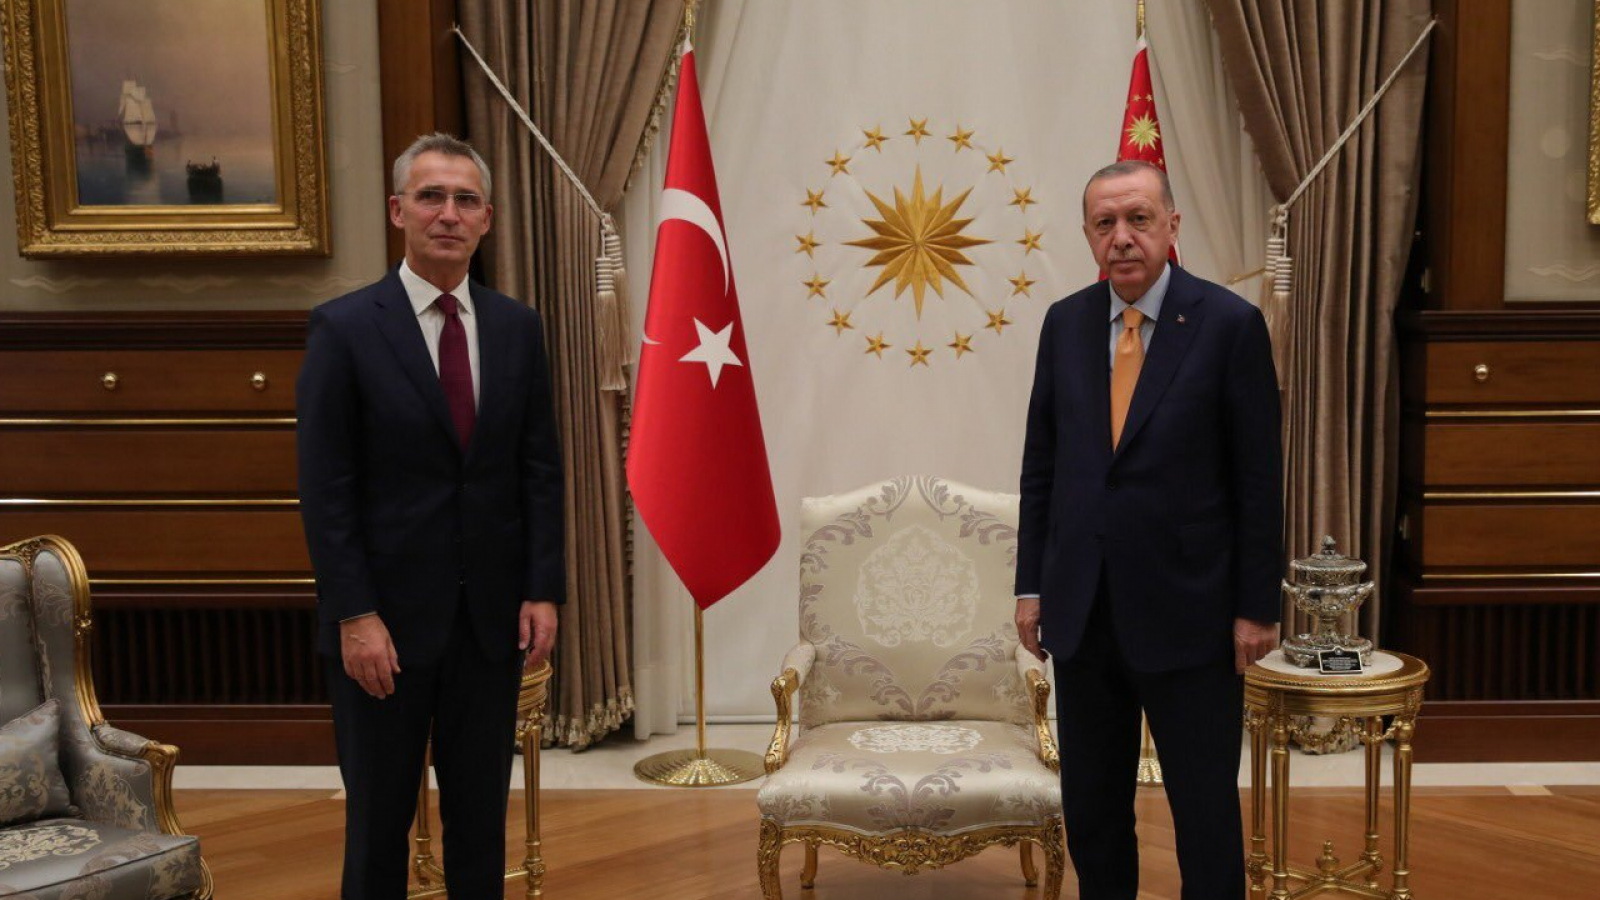 Stoltenberg and Erdogan